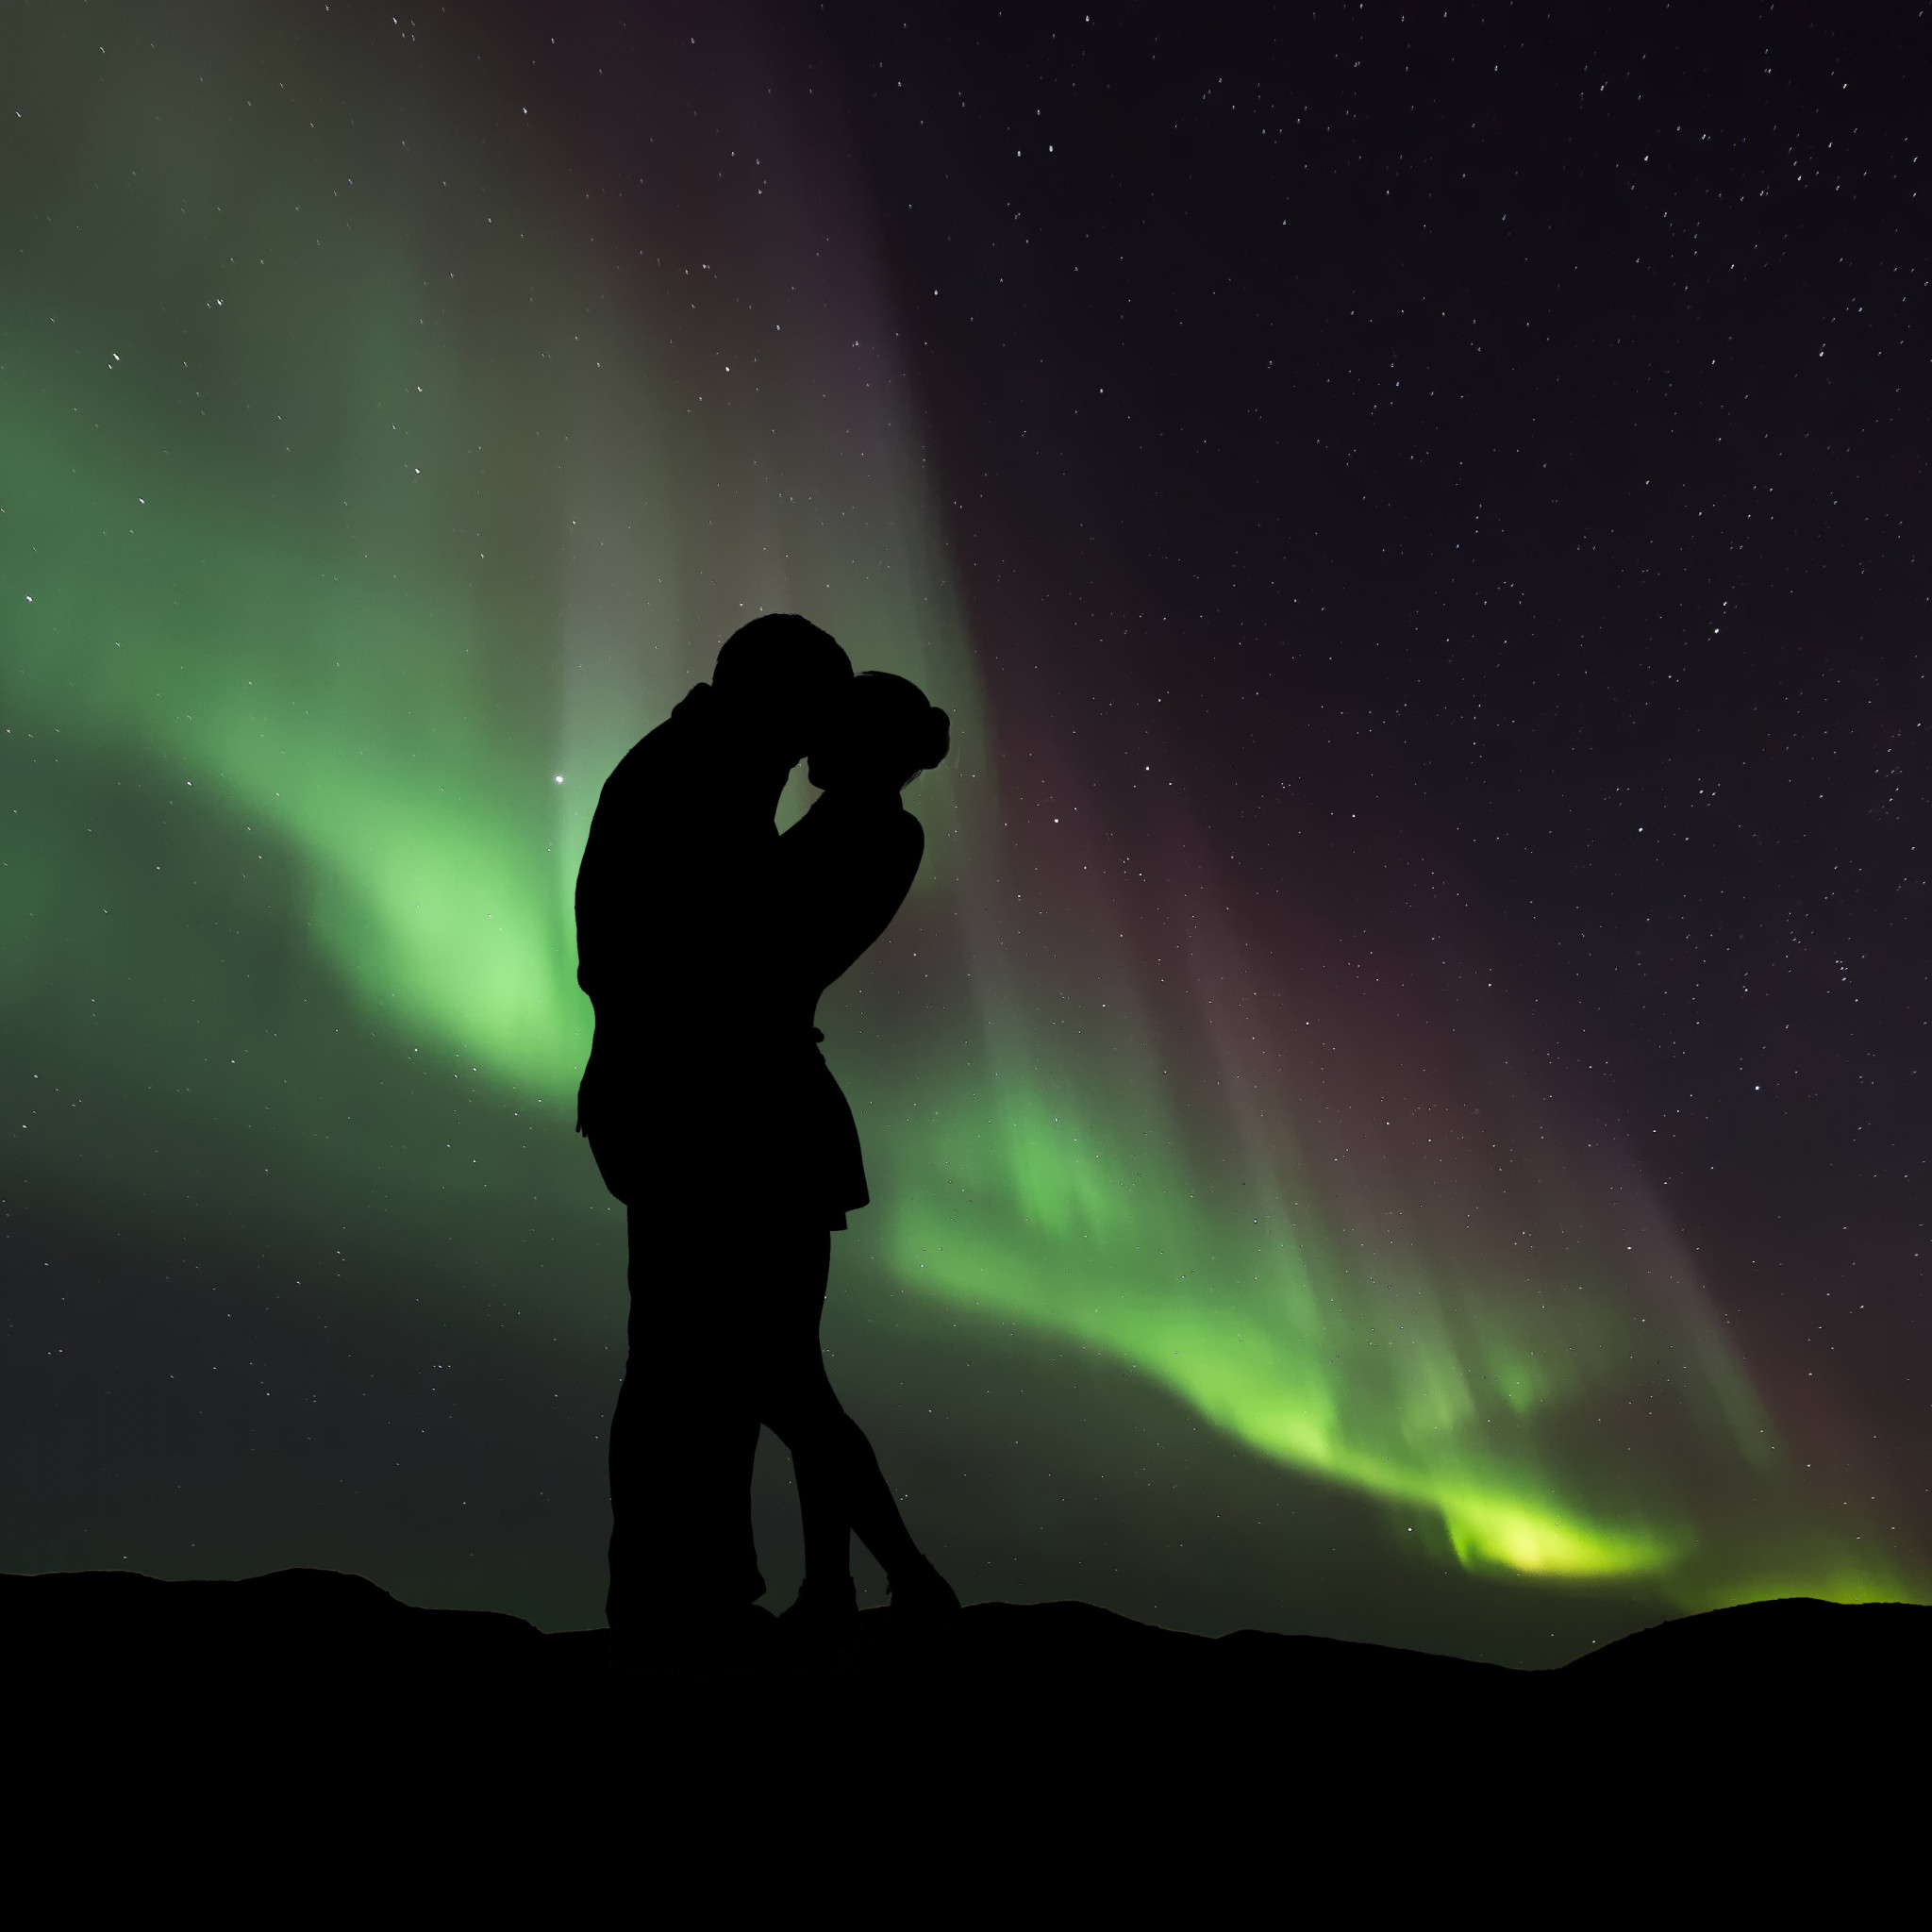 Couple in love under the Northern Lights wallpaper 2048x2048